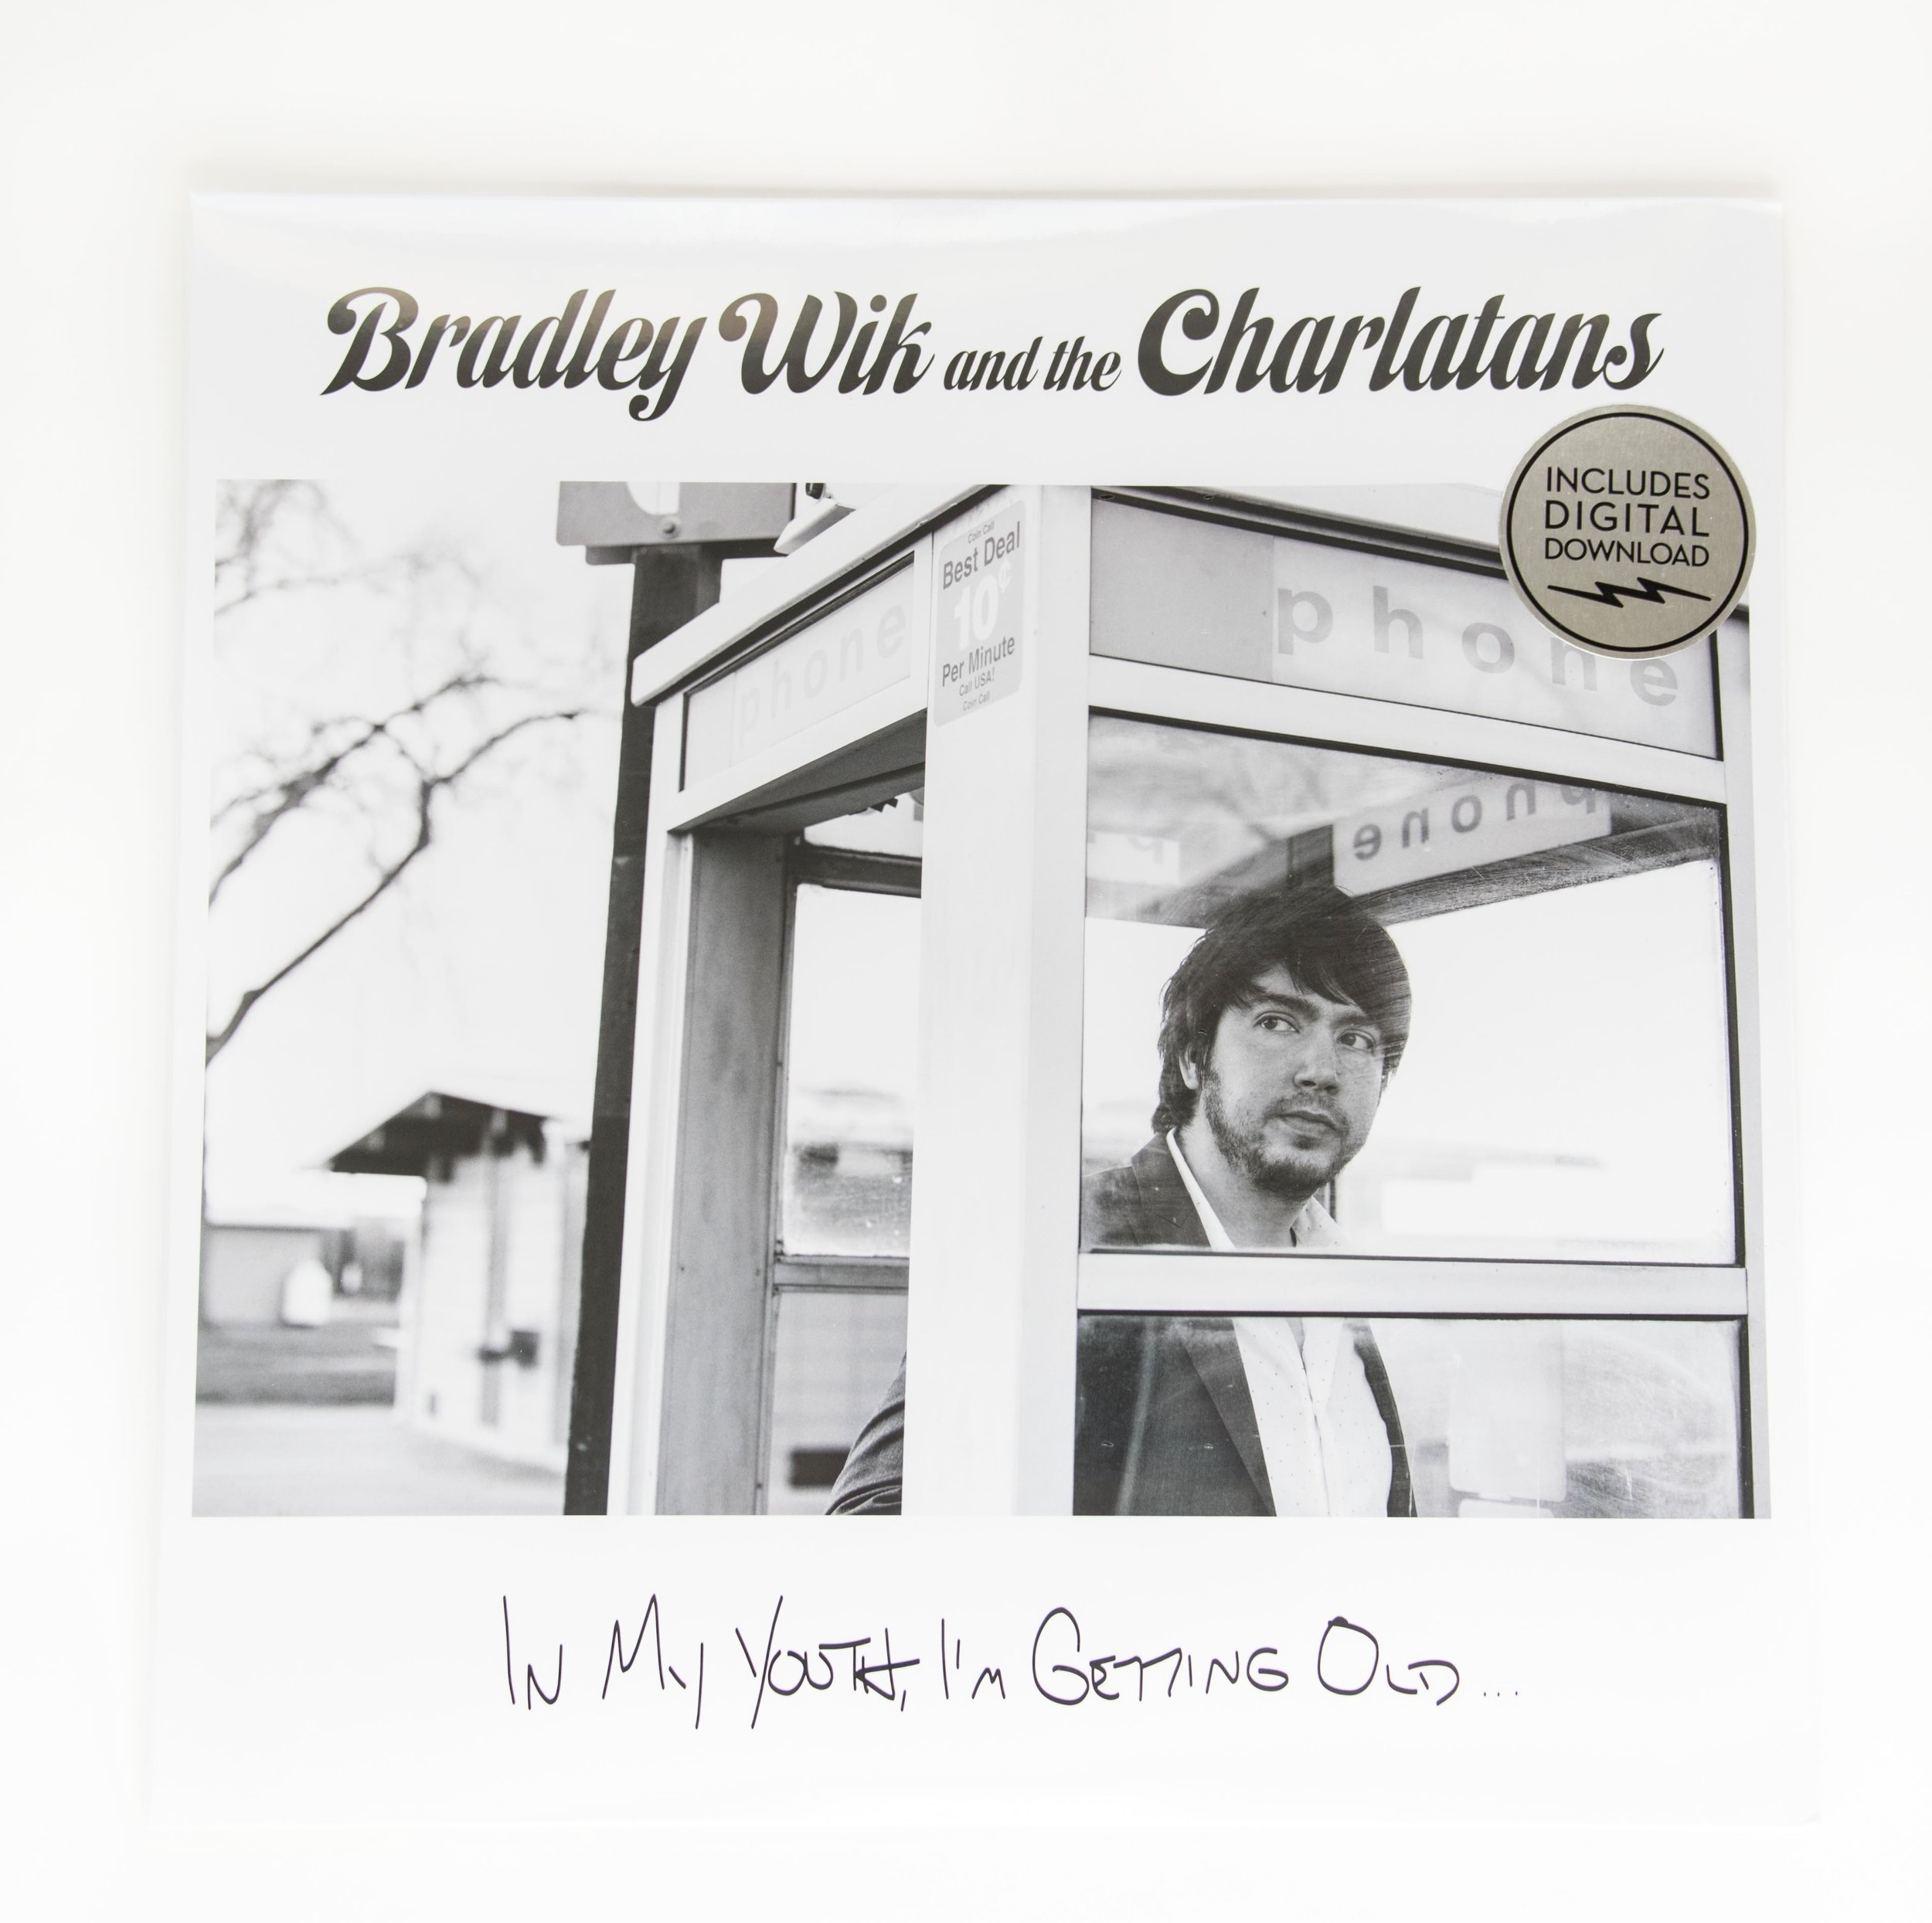 "Bradley Wik and Charlatans - ""In My Youth, I'm Getting Old..."" -Vinyl Cover"